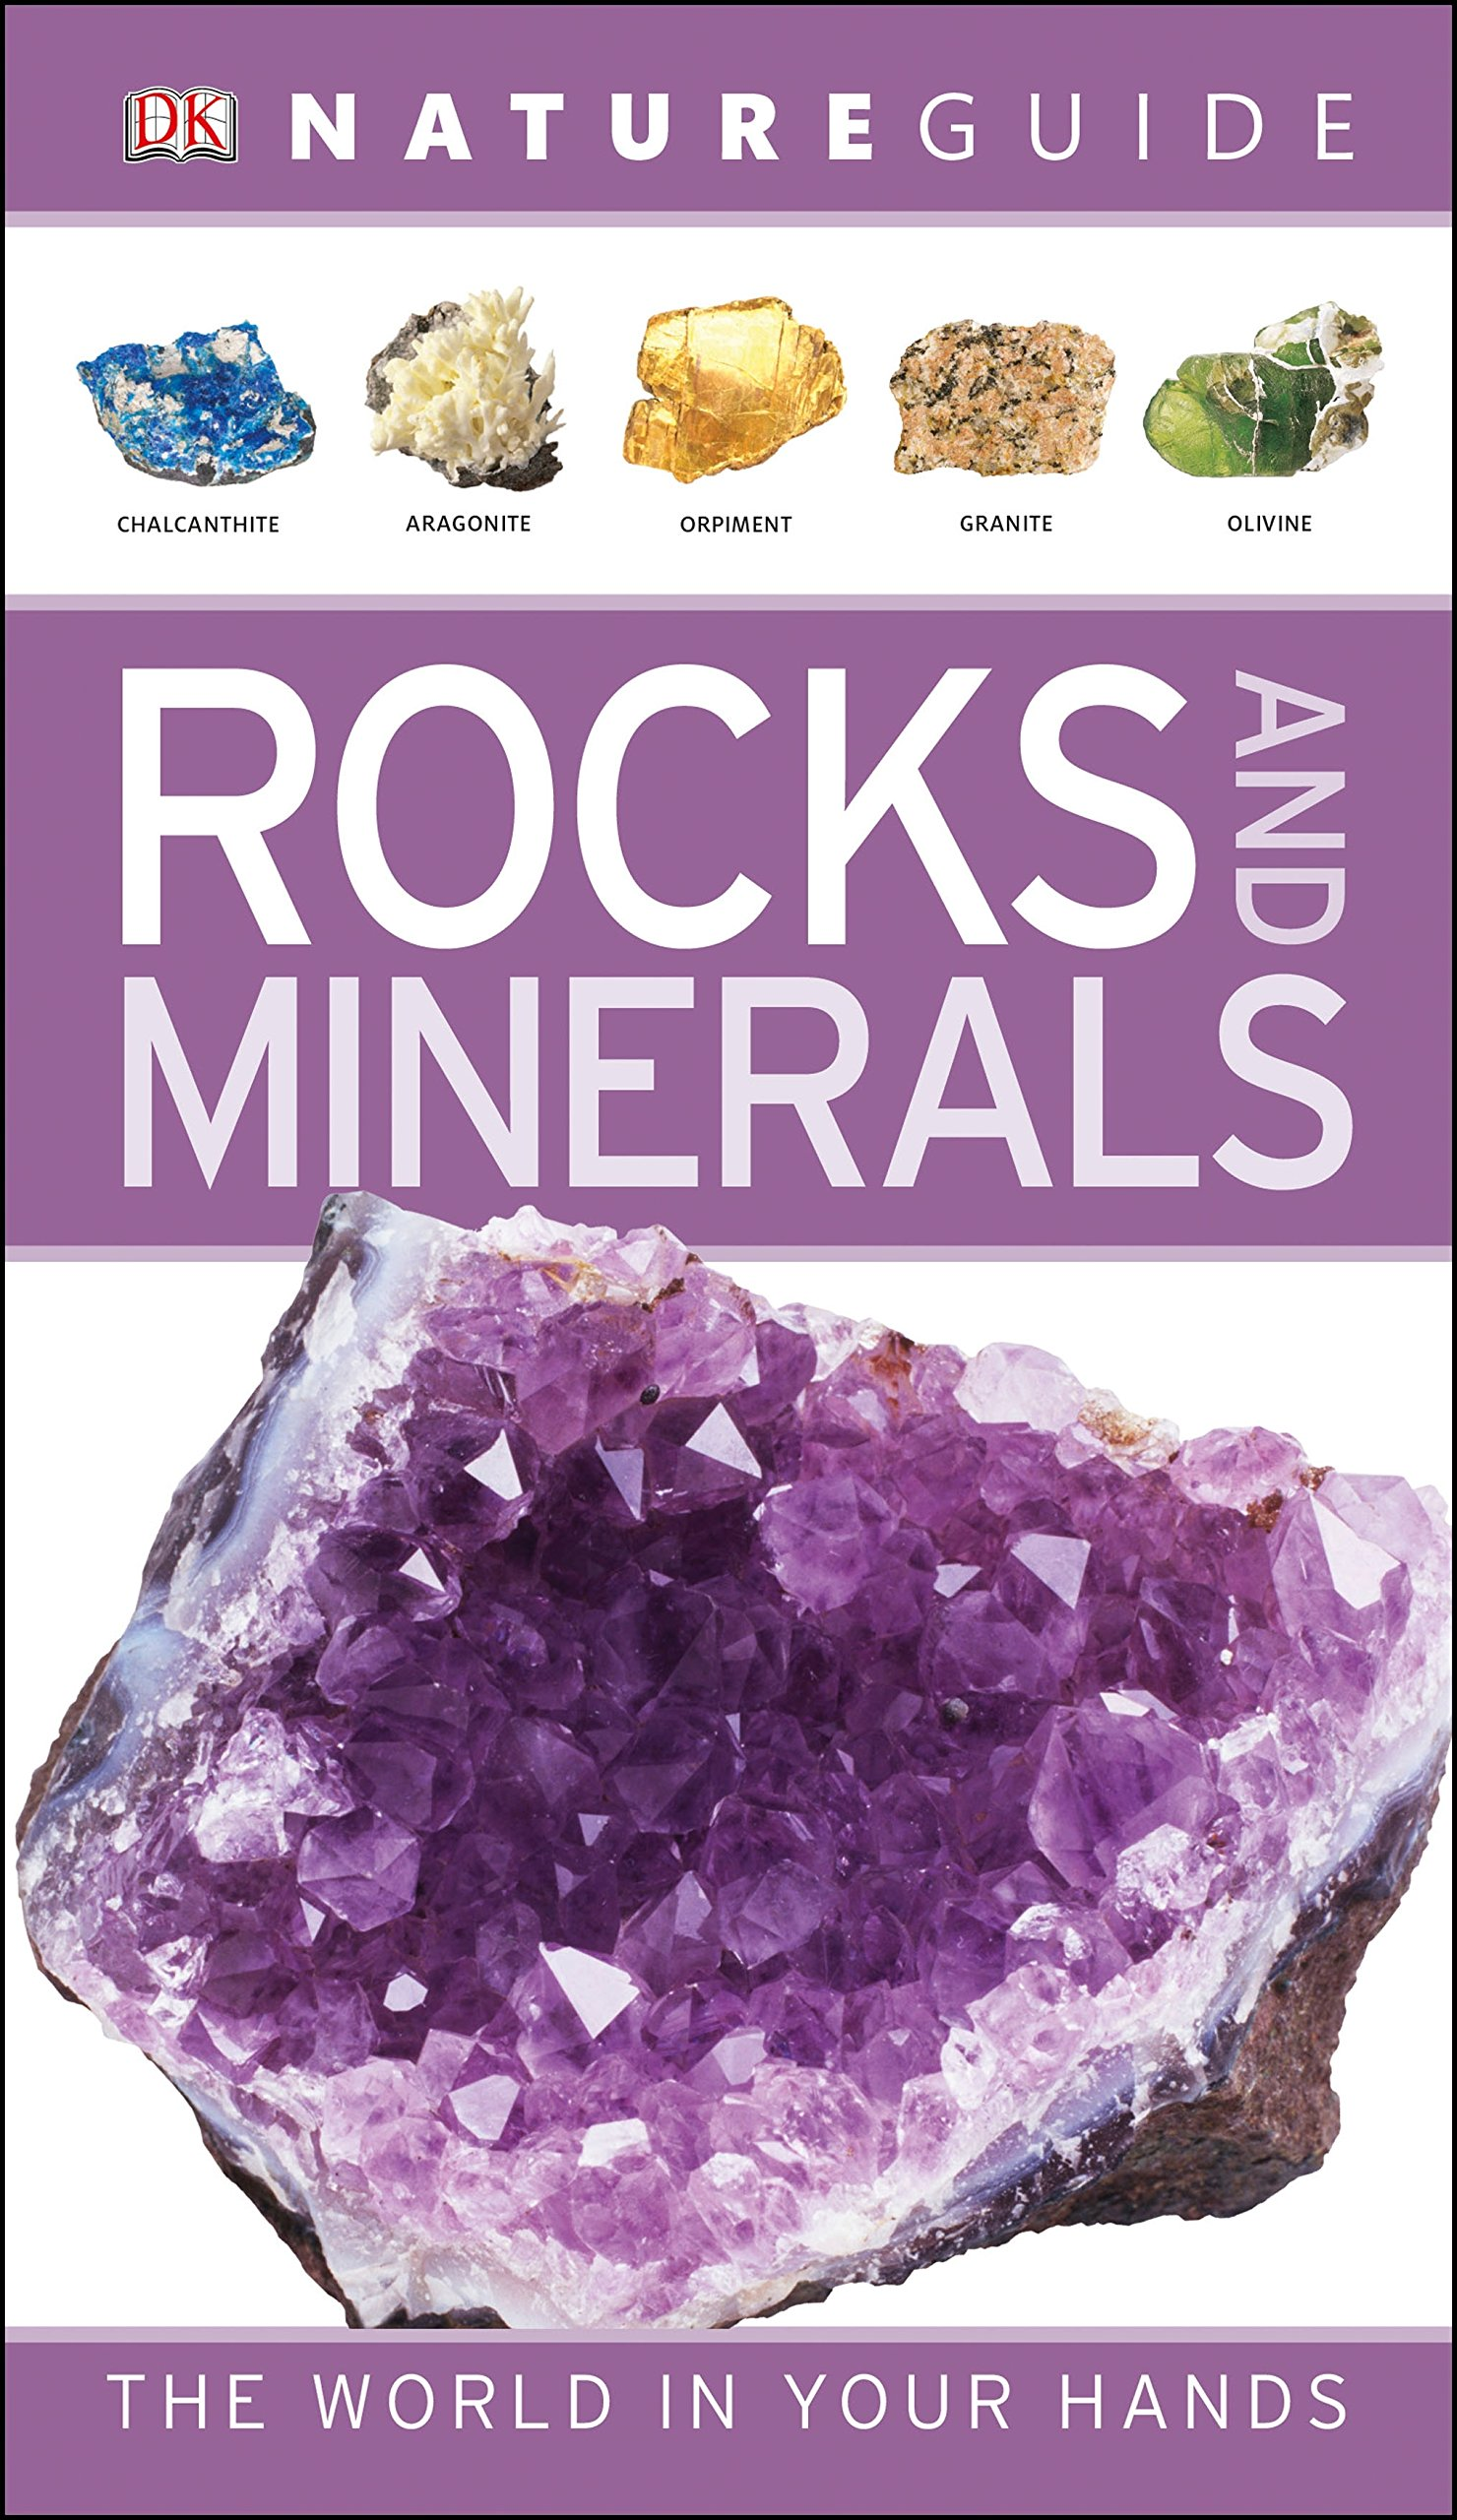 Nature Guide Rocks and Minerals (DK Nature Guide)